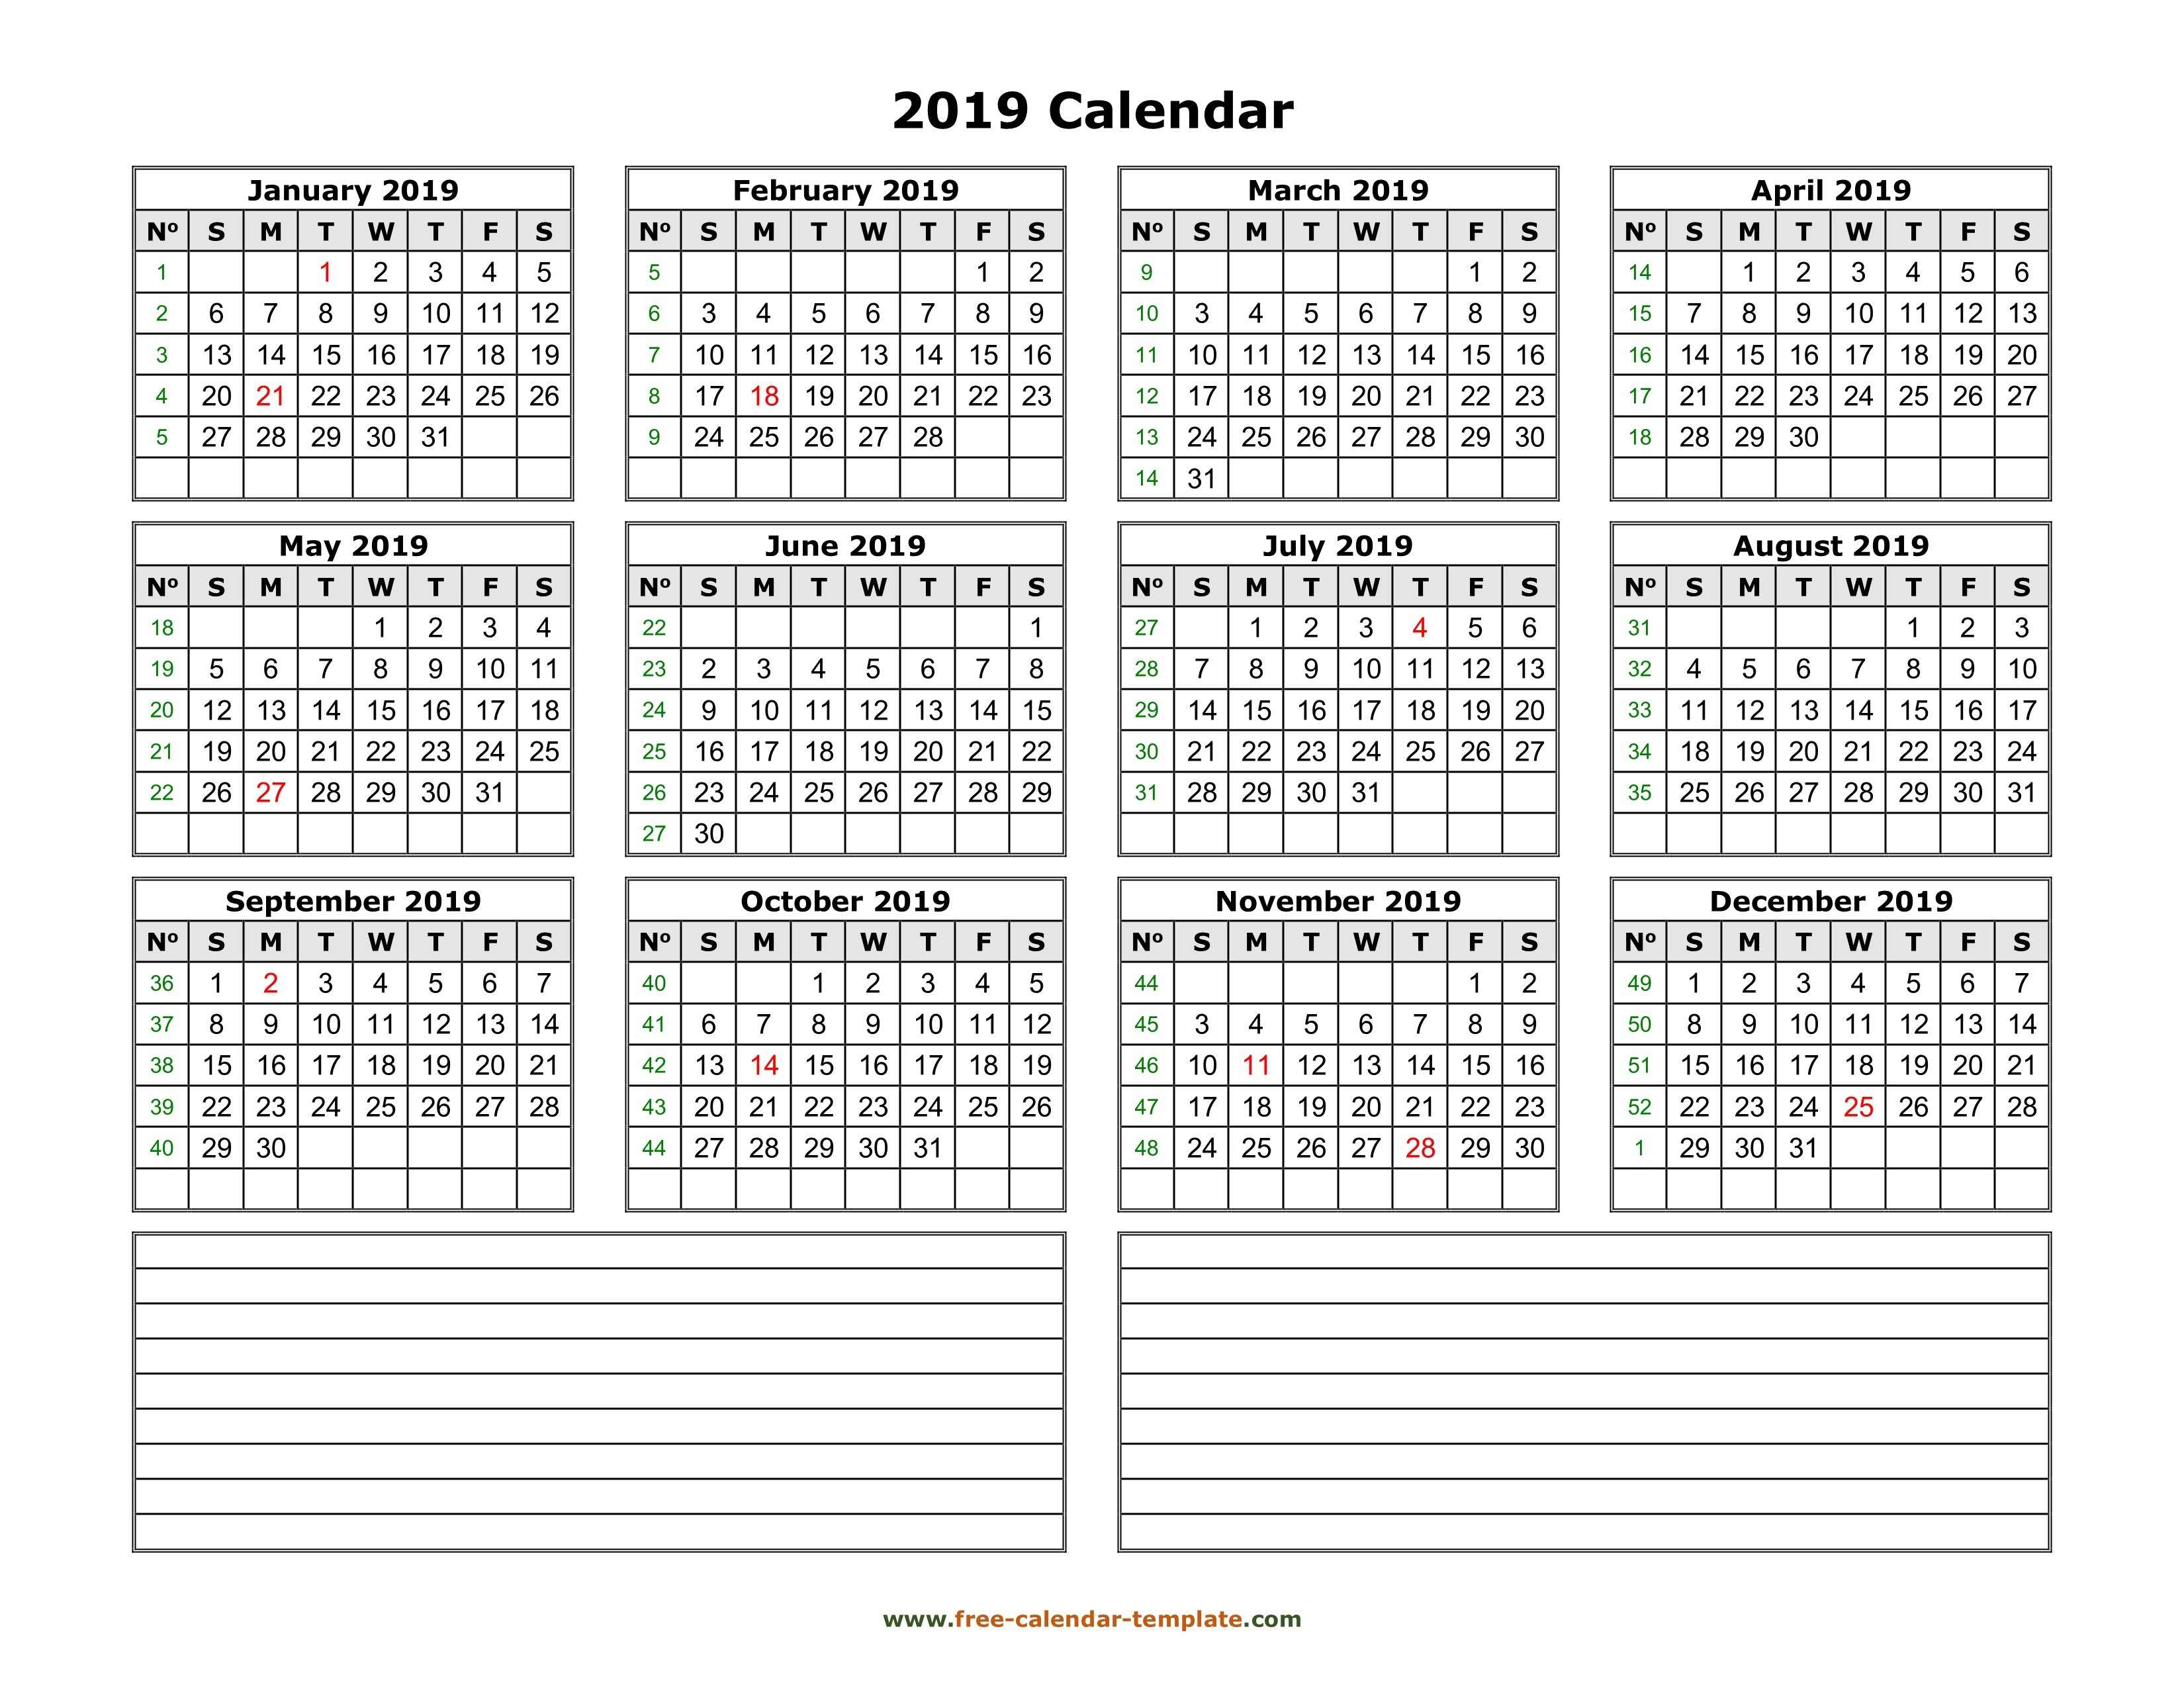 Yearly 2019 Calendar Printable With Space For Notes | Free-Calendar Calendar 2019 View